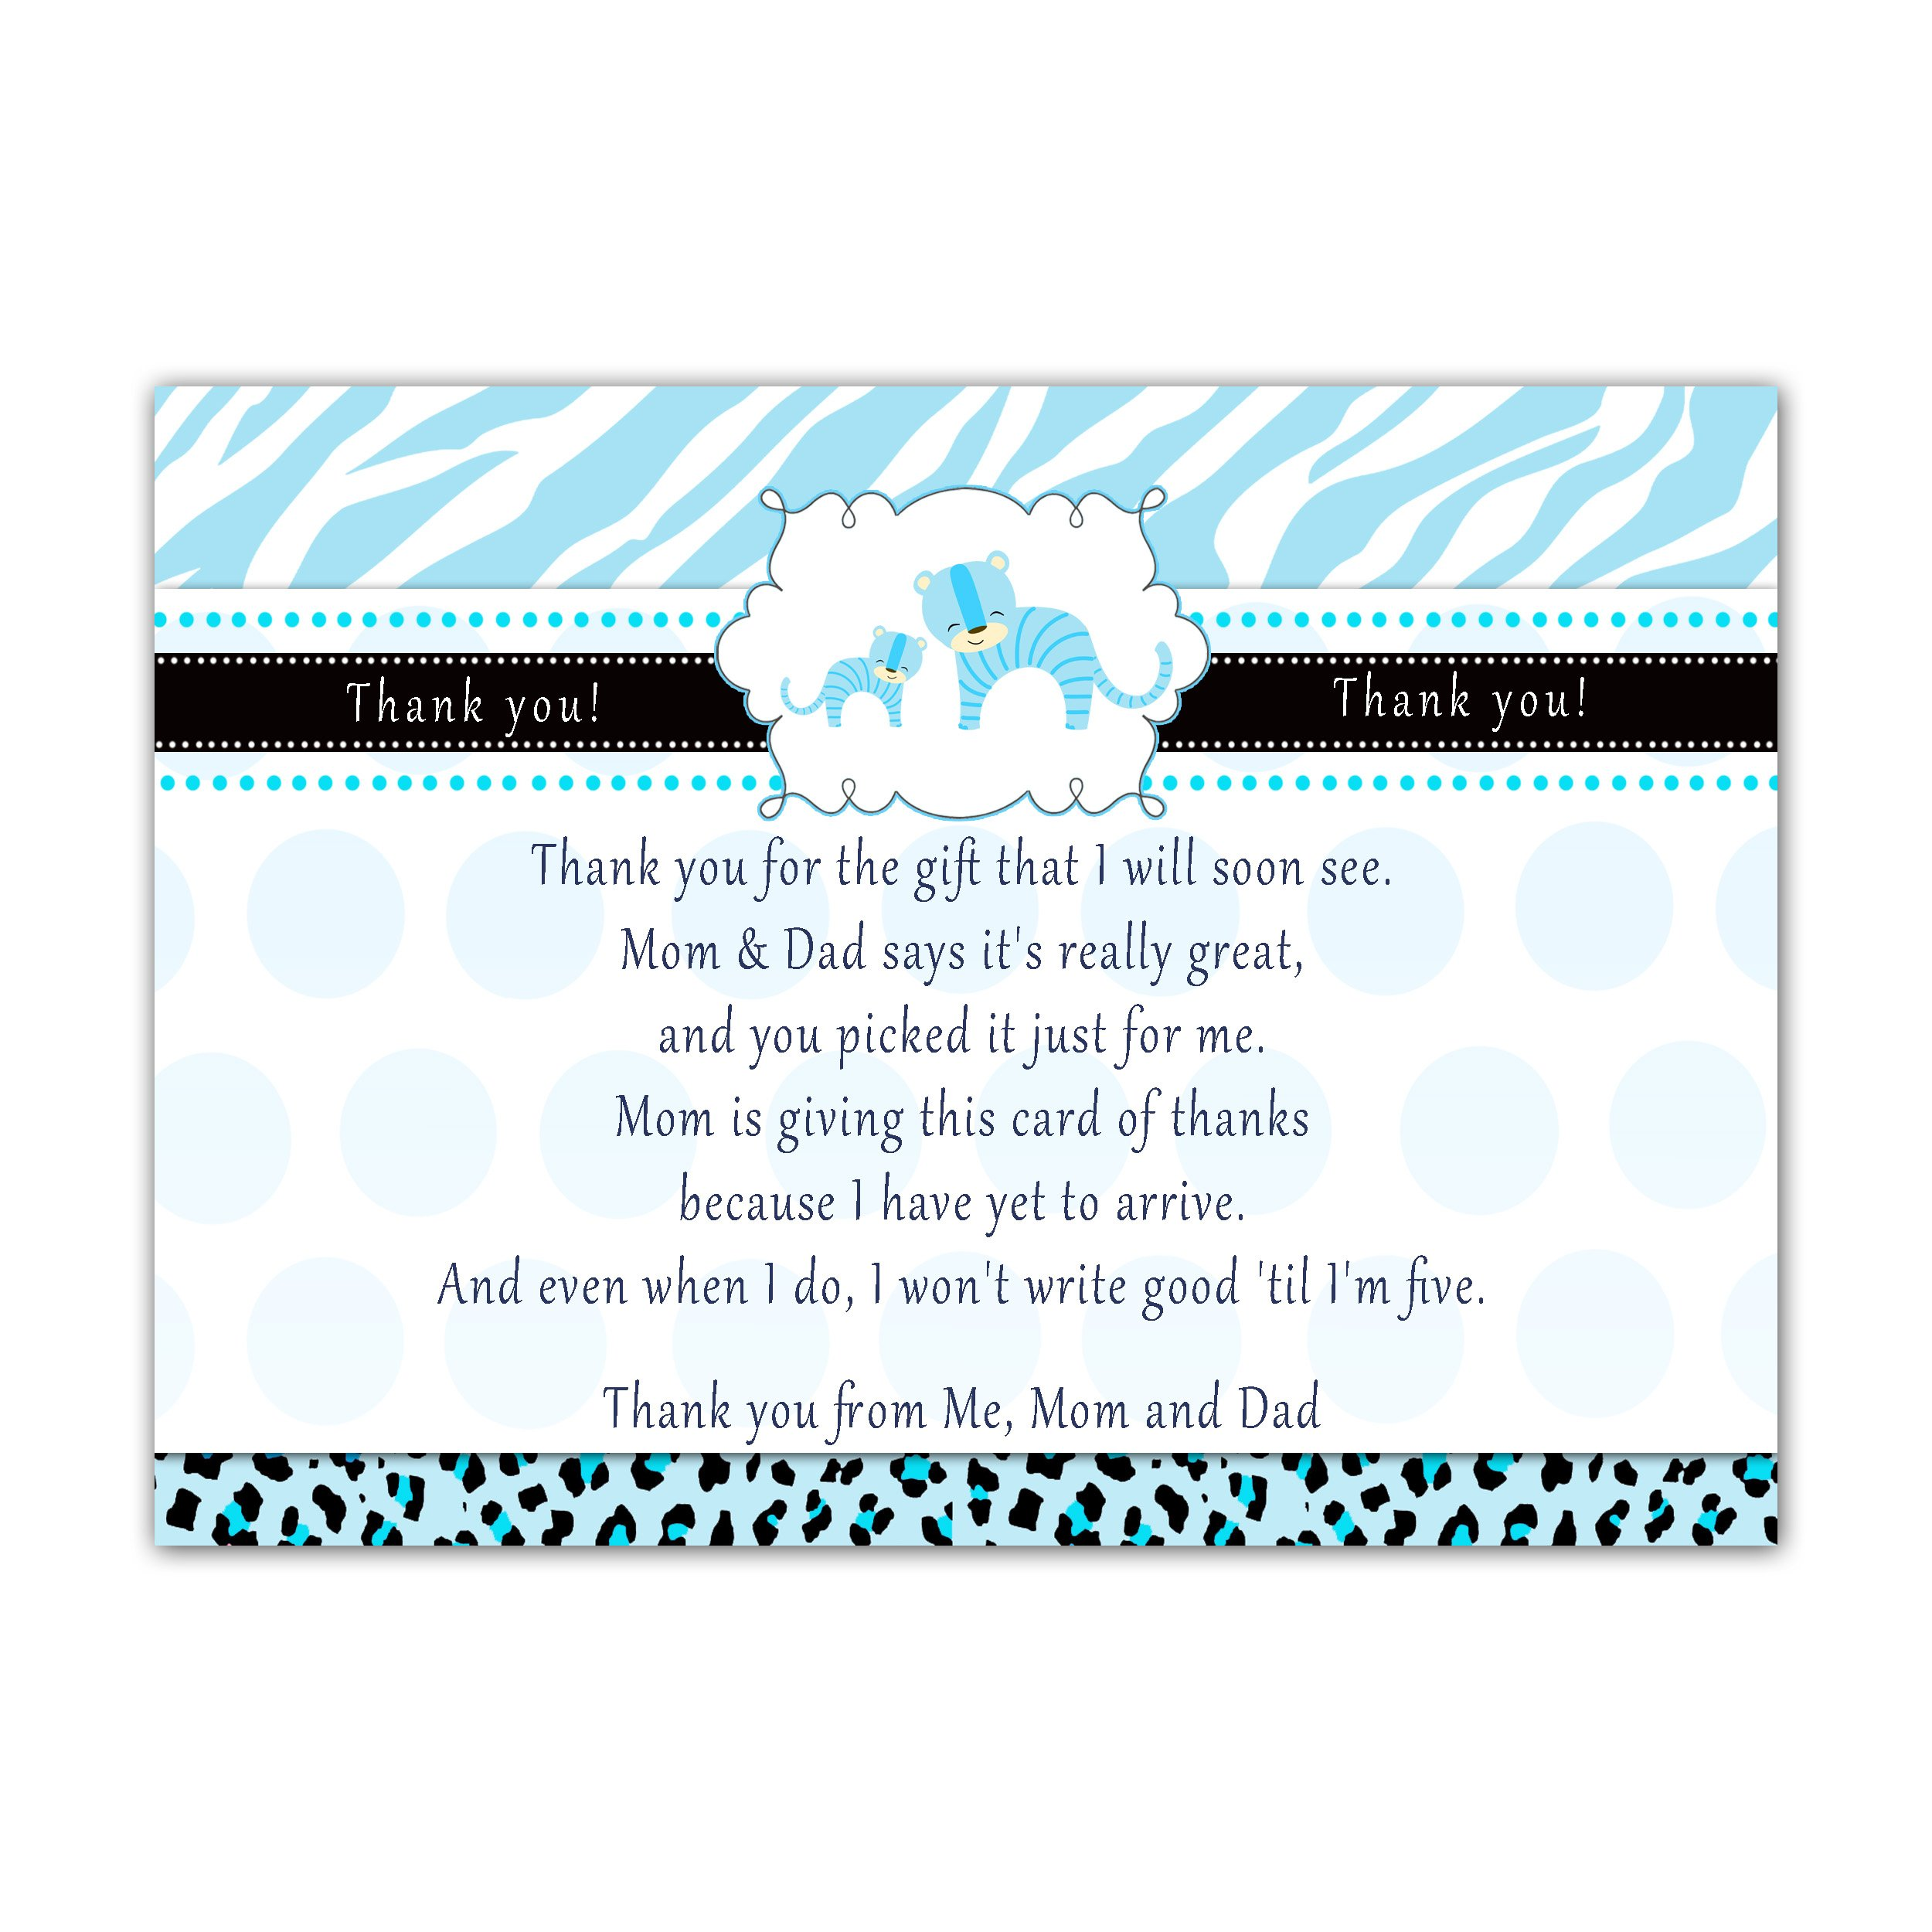 30 Thank You Cards Tiger Cub Baby Boy Shower Personalized Cards Photo Paper